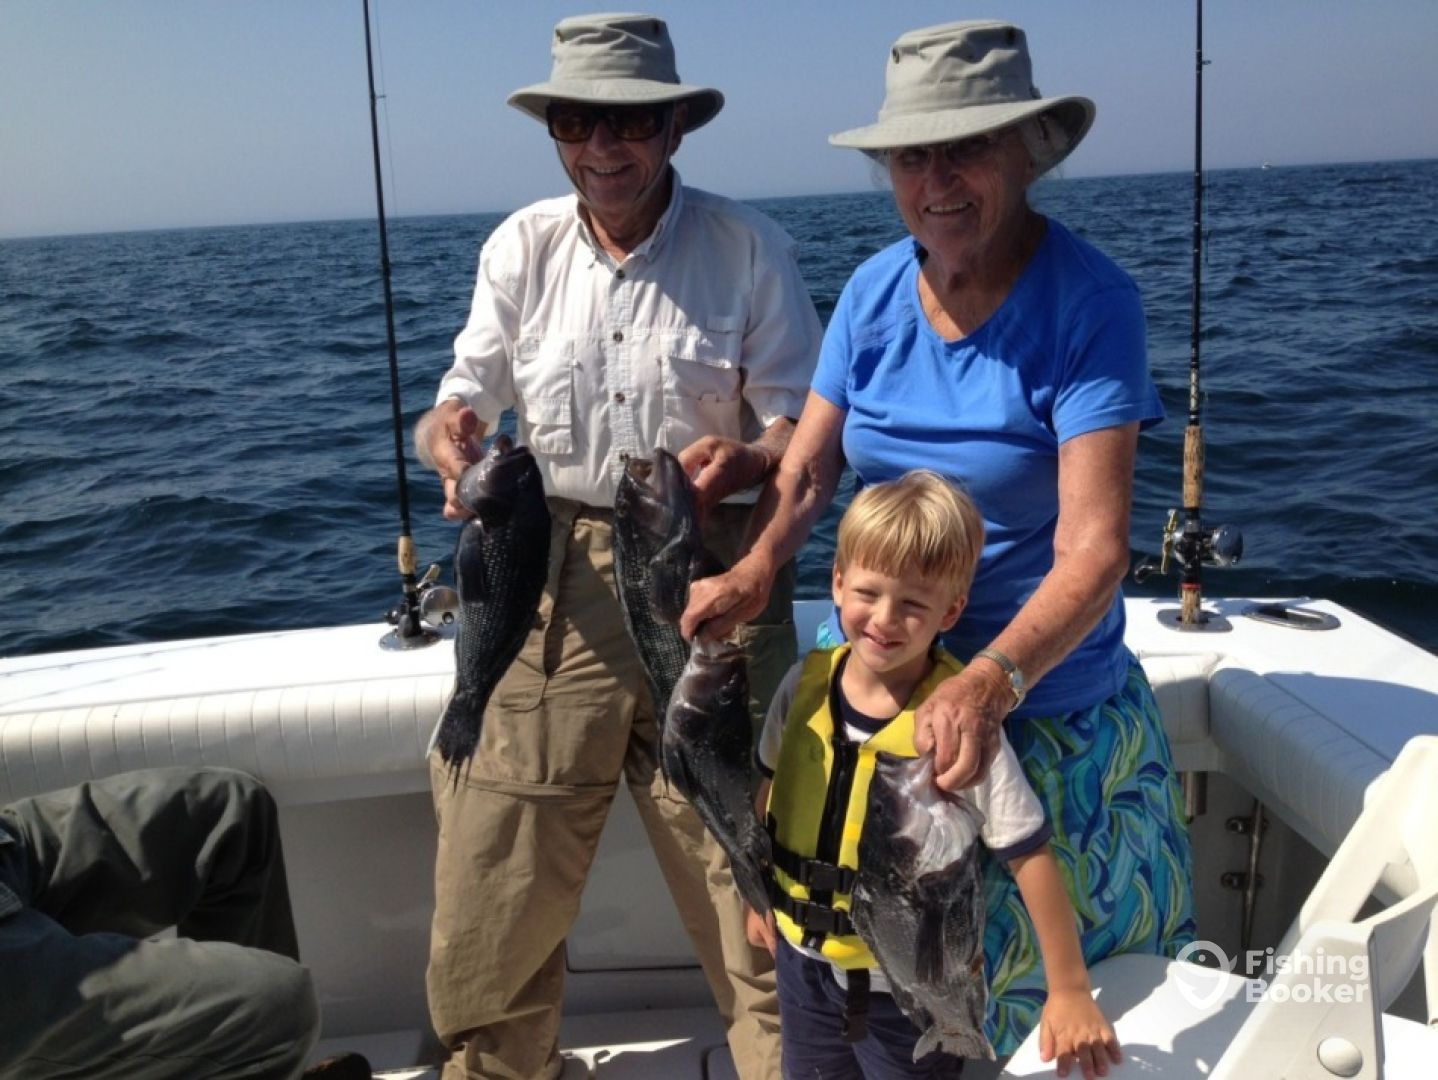 Blue venture fishing charters mystic ct fishingbooker for Fishing trips in ct